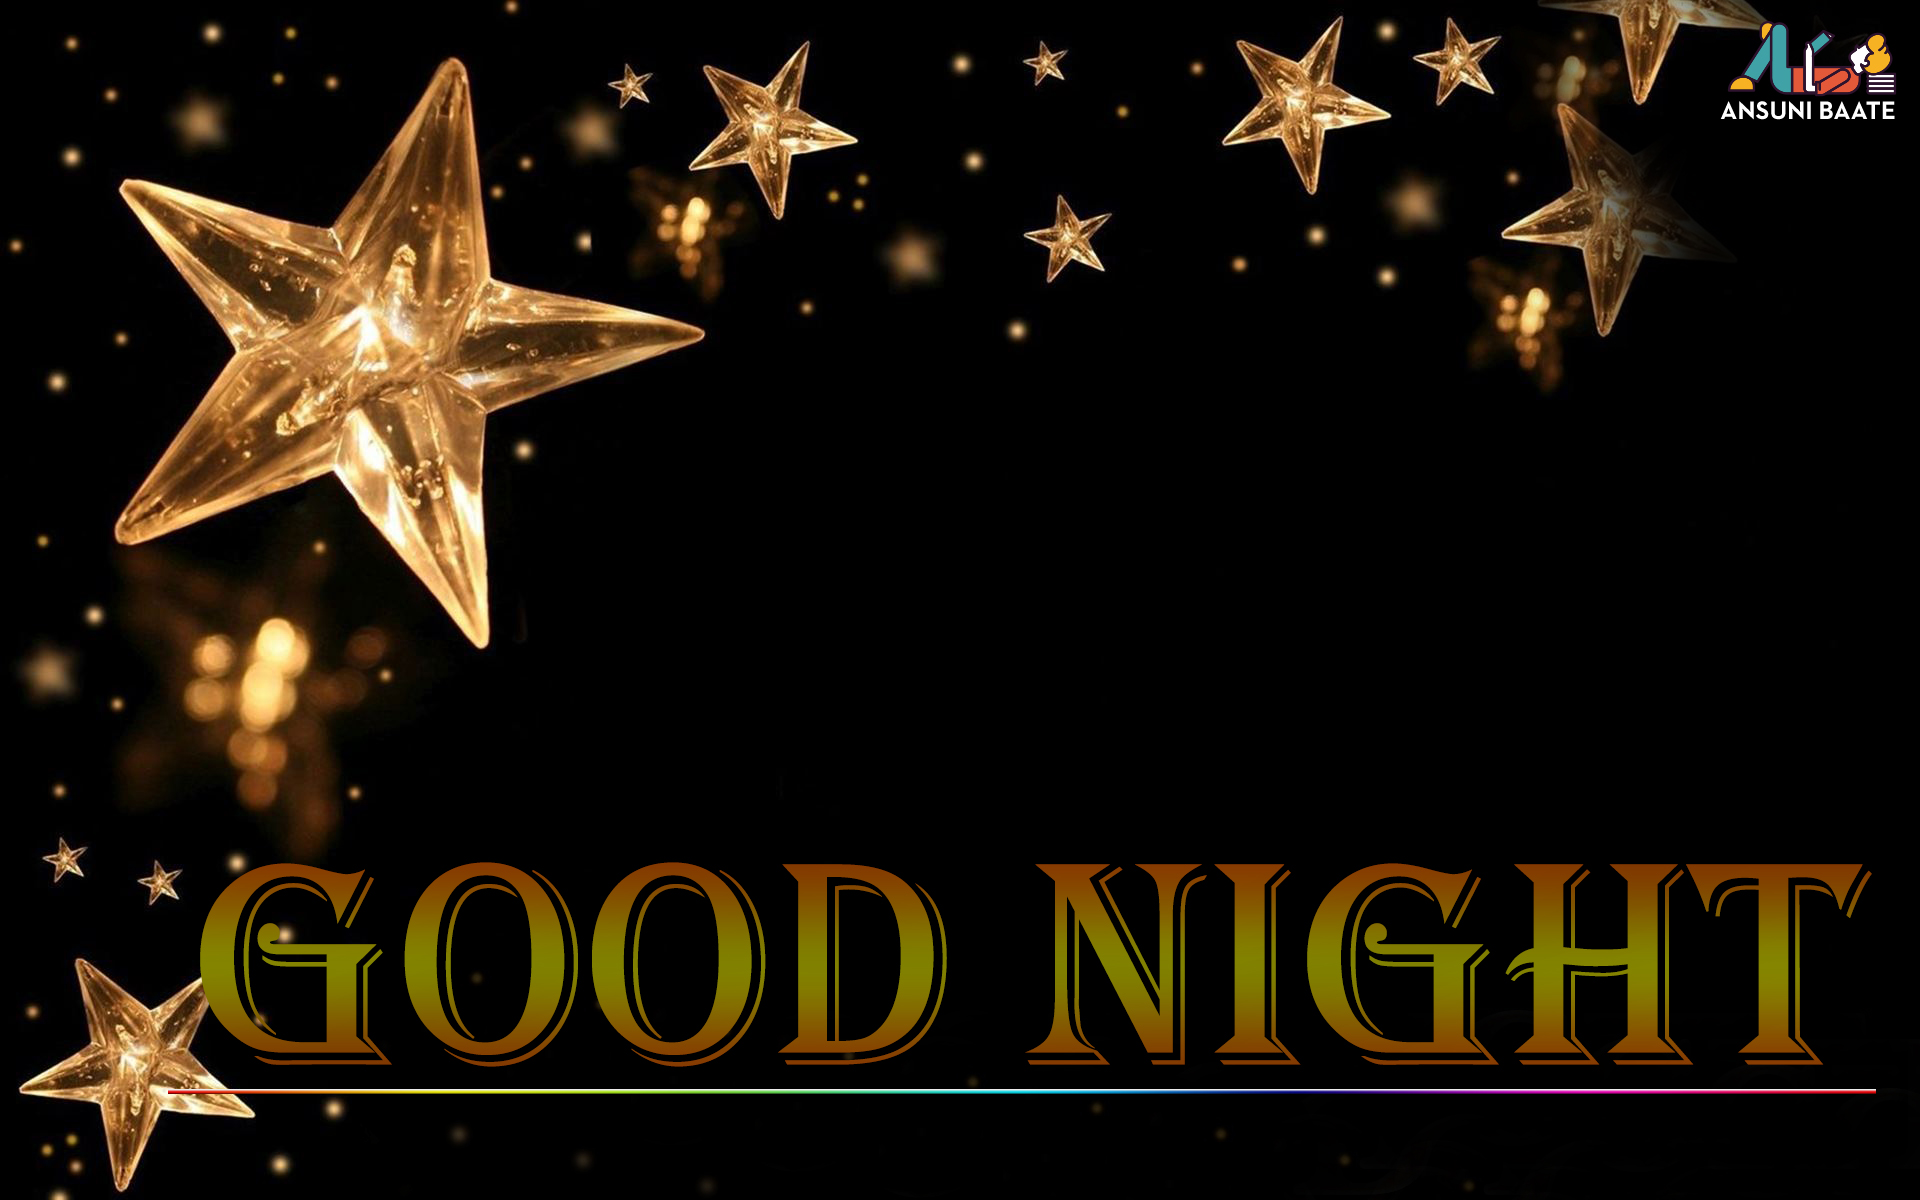 good night wallpaper background photos beautiful image